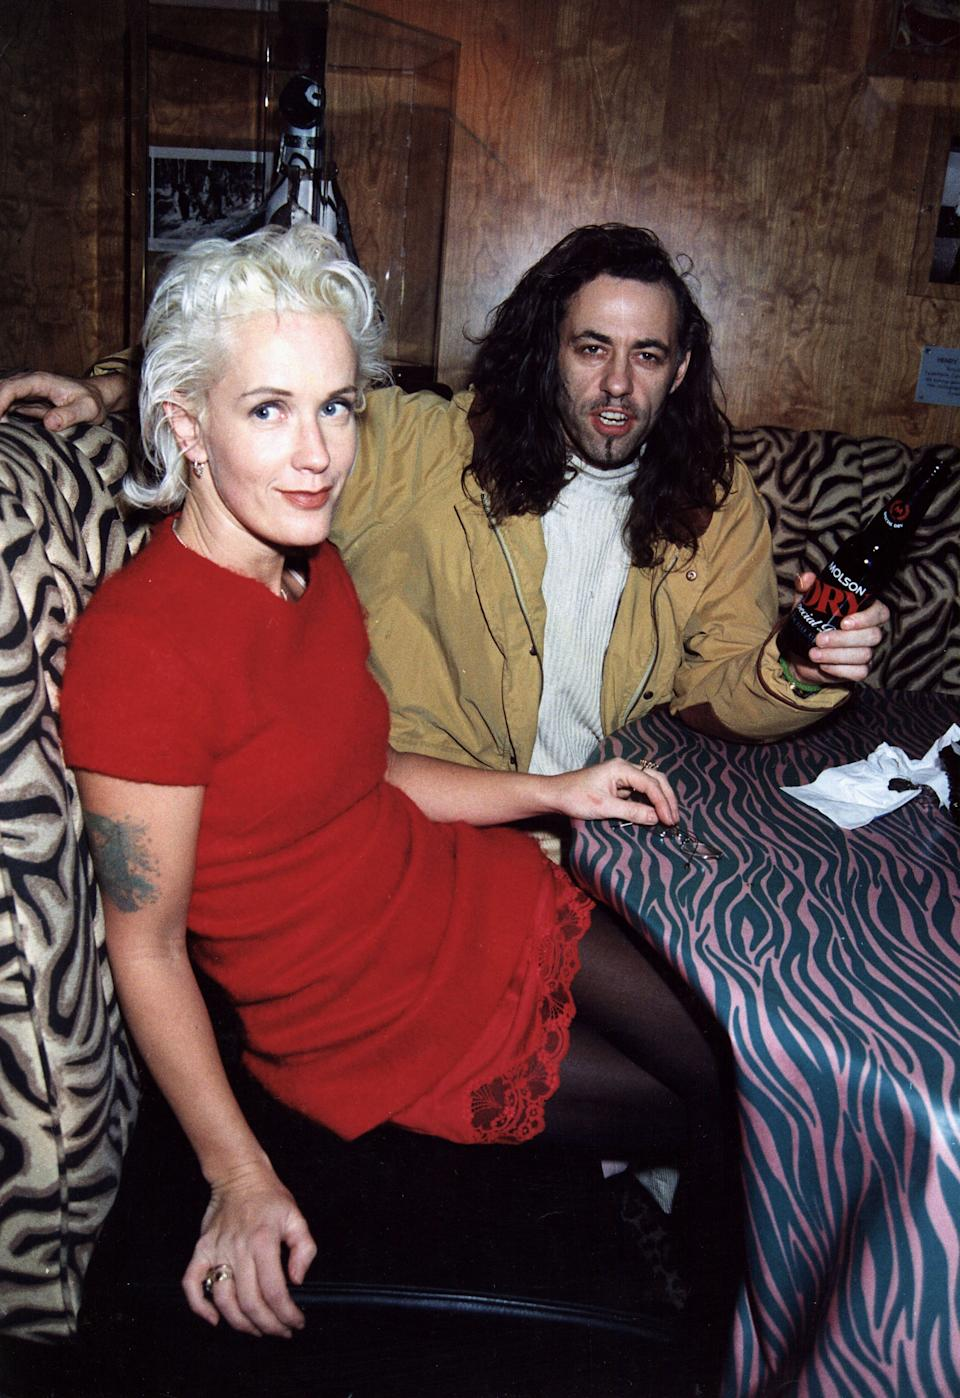 Bob Geldof (R) and Paula Yates attend a party on January 11, 1995, in London, England.  (Photo by Dave M. Benett/Getty Images)